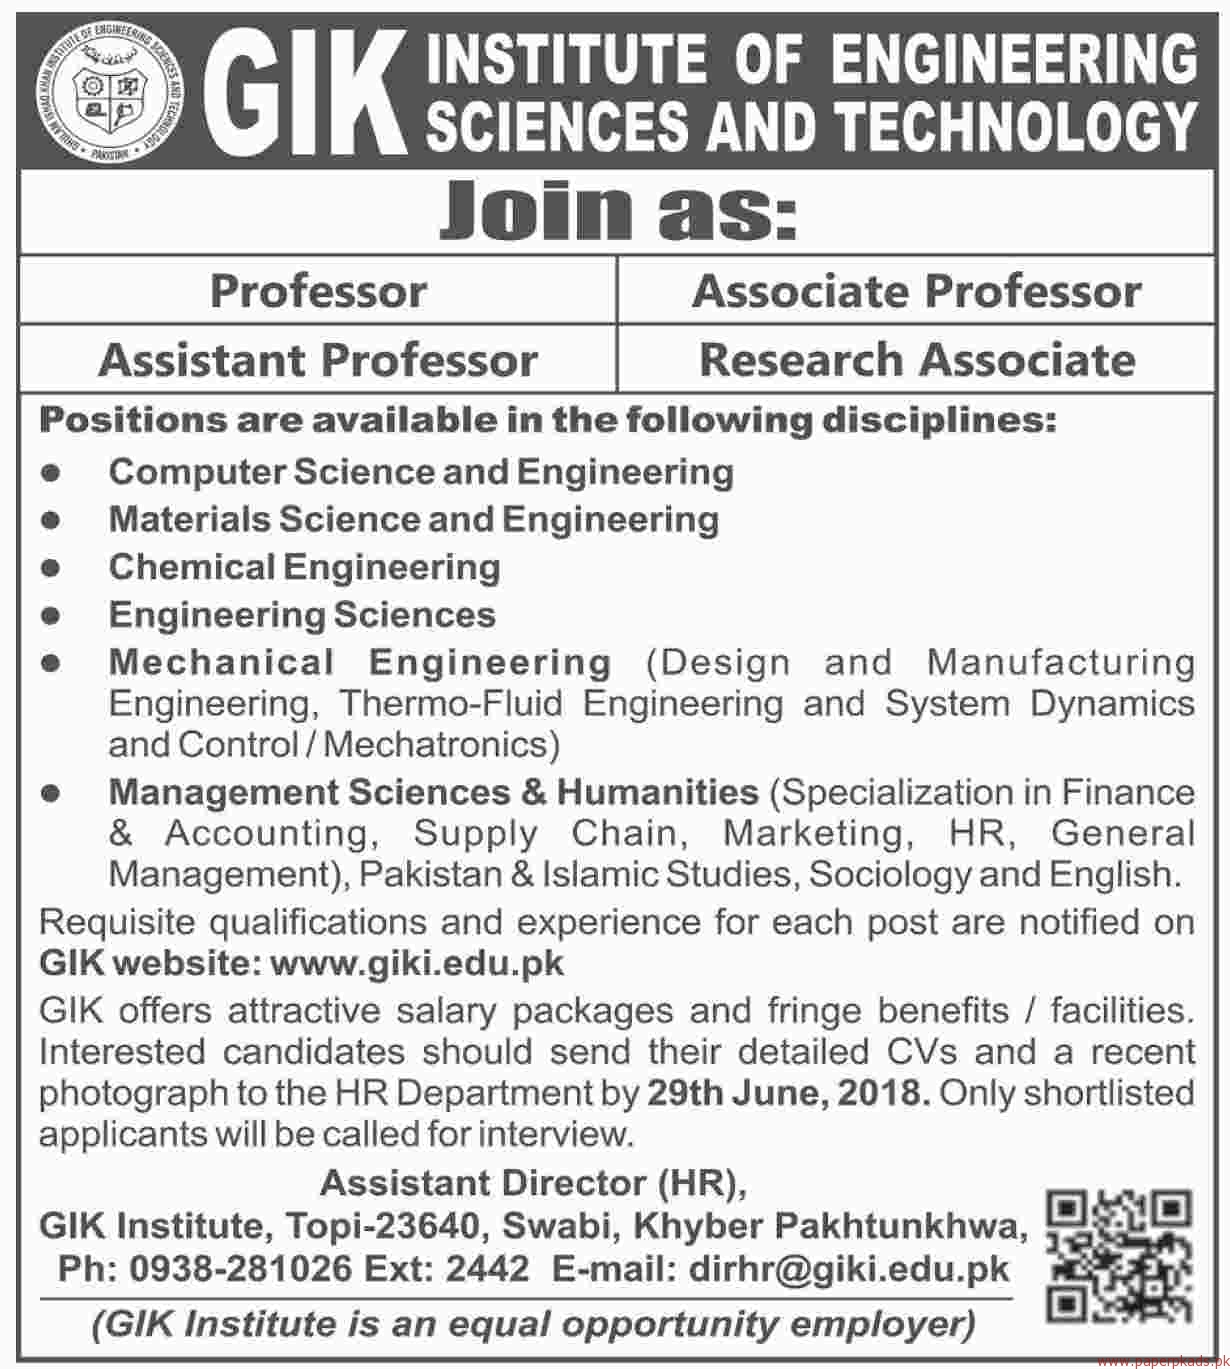 GIK Institute of Engineering Sciences and Technology Jobs 2018